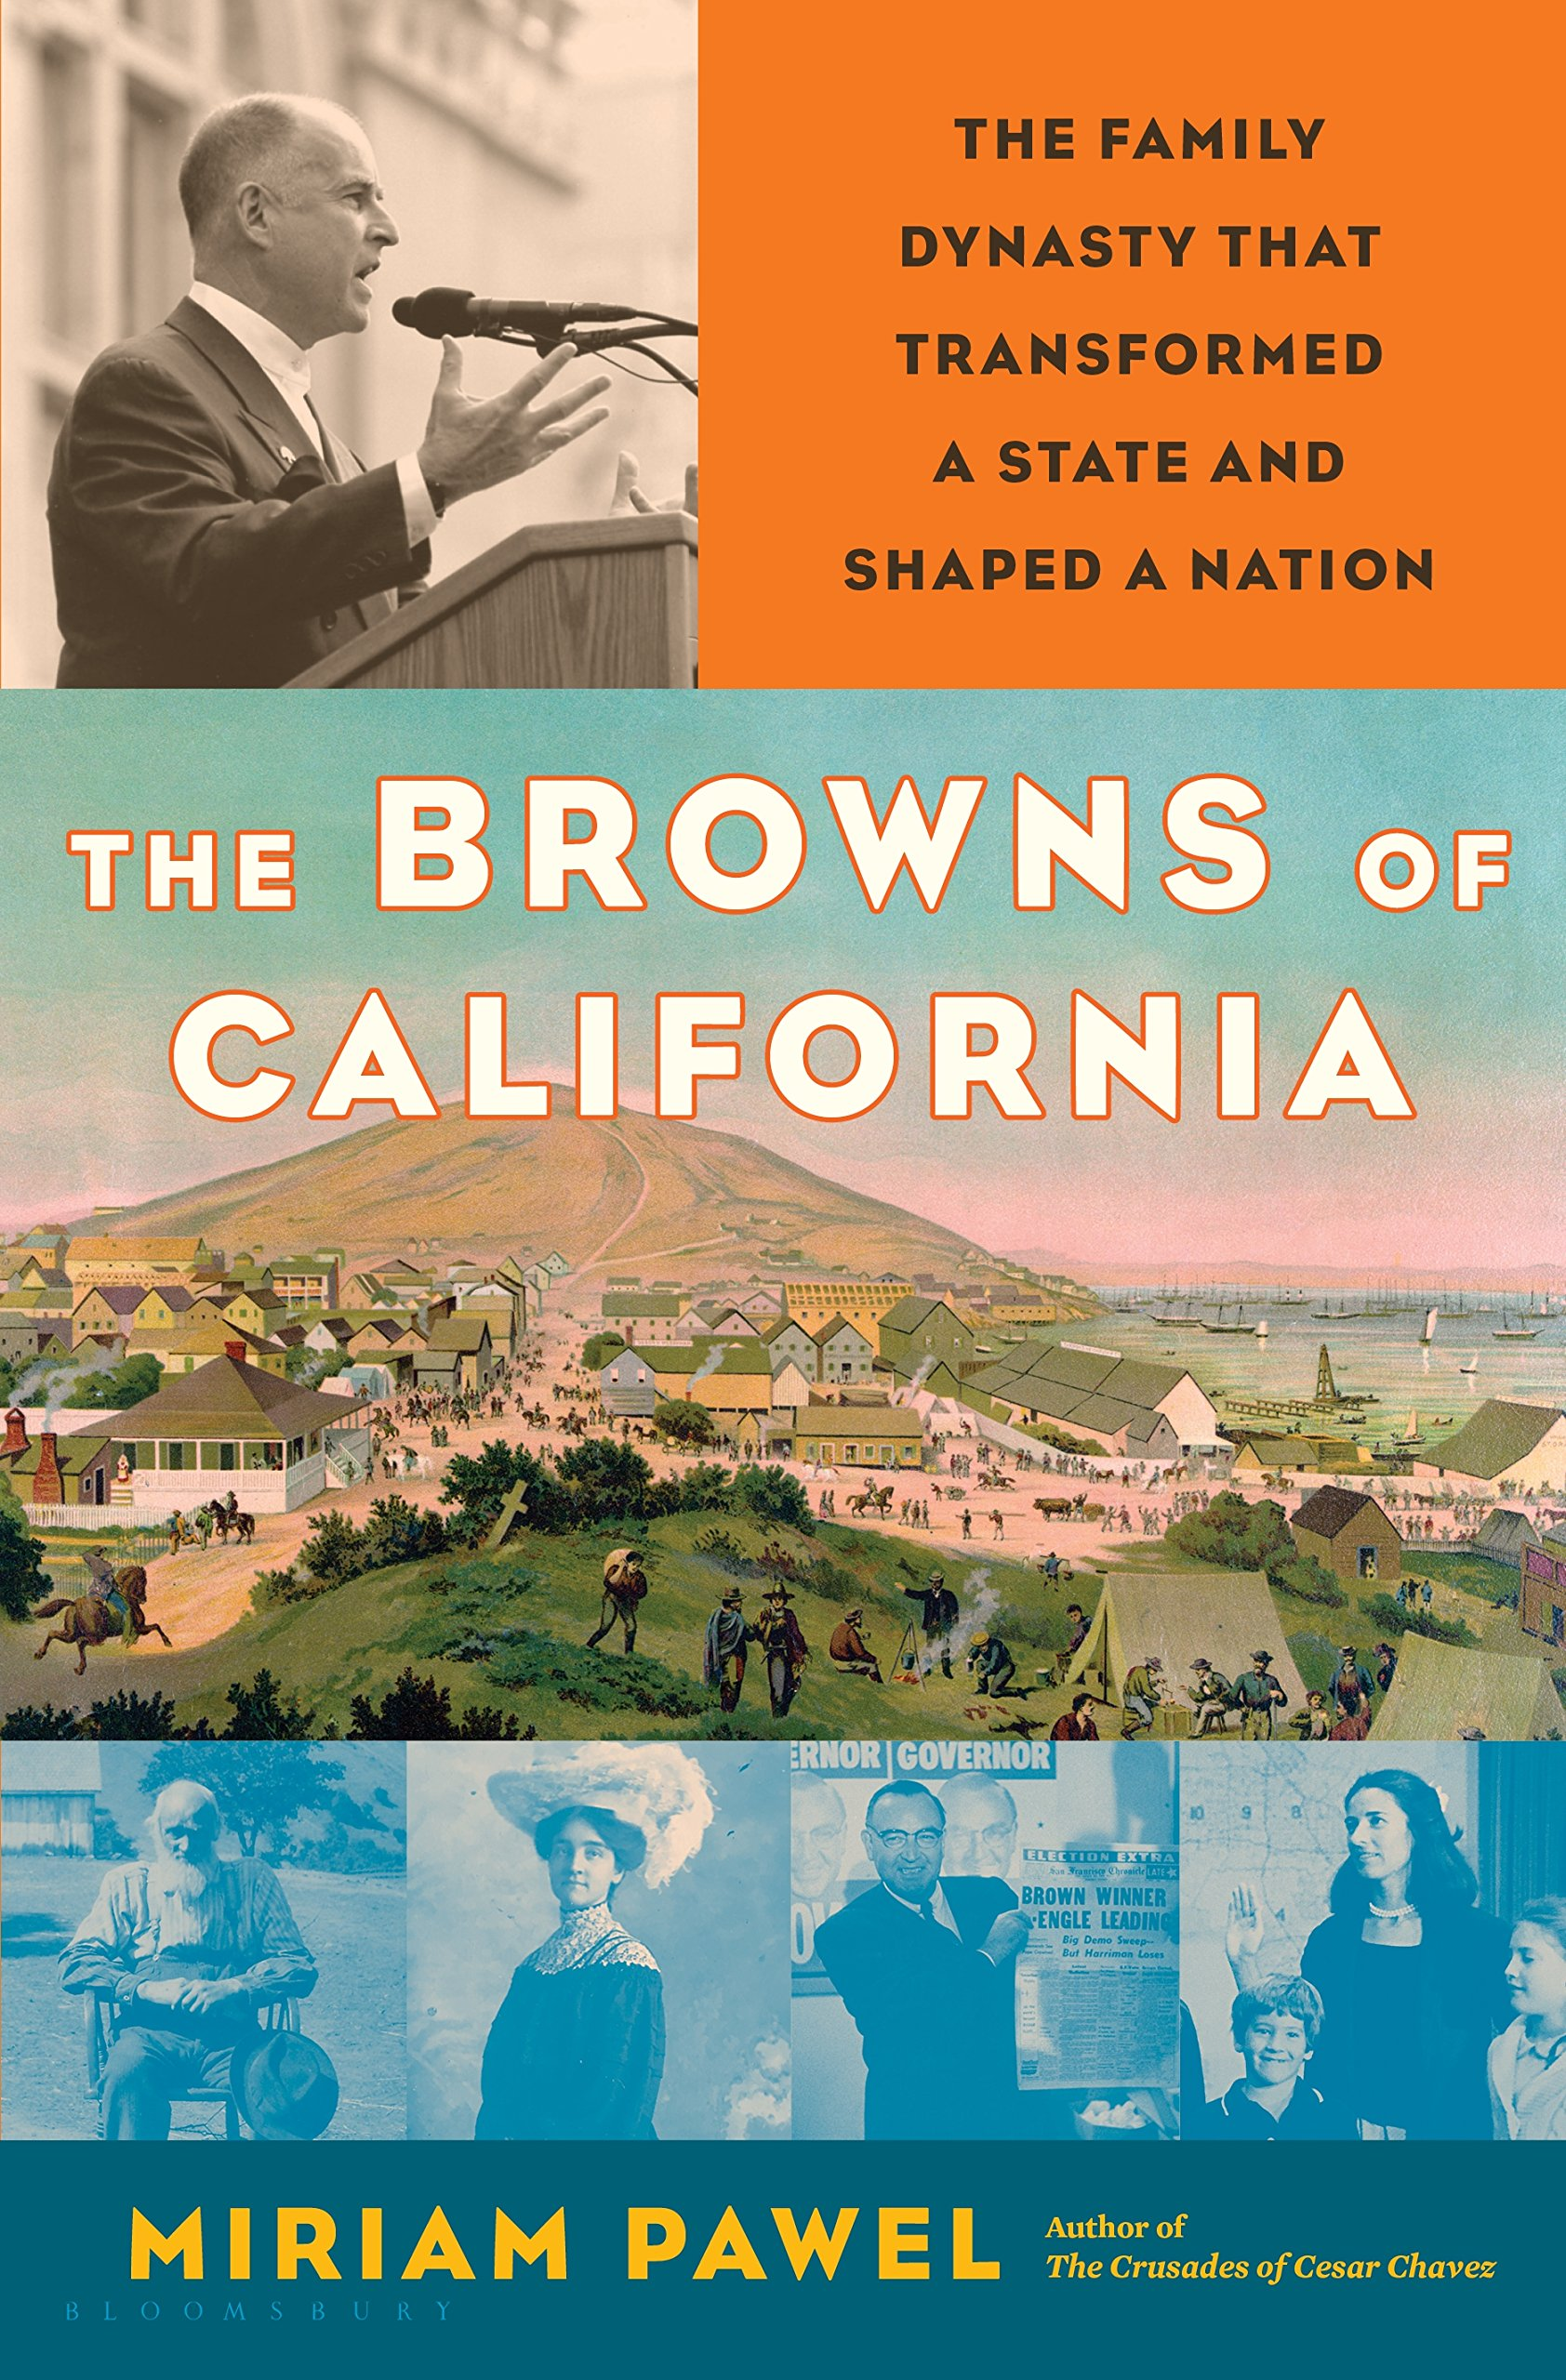 Download The Browns of California: The Family Dynasty that Transformed a State and Shaped a Nation ebook